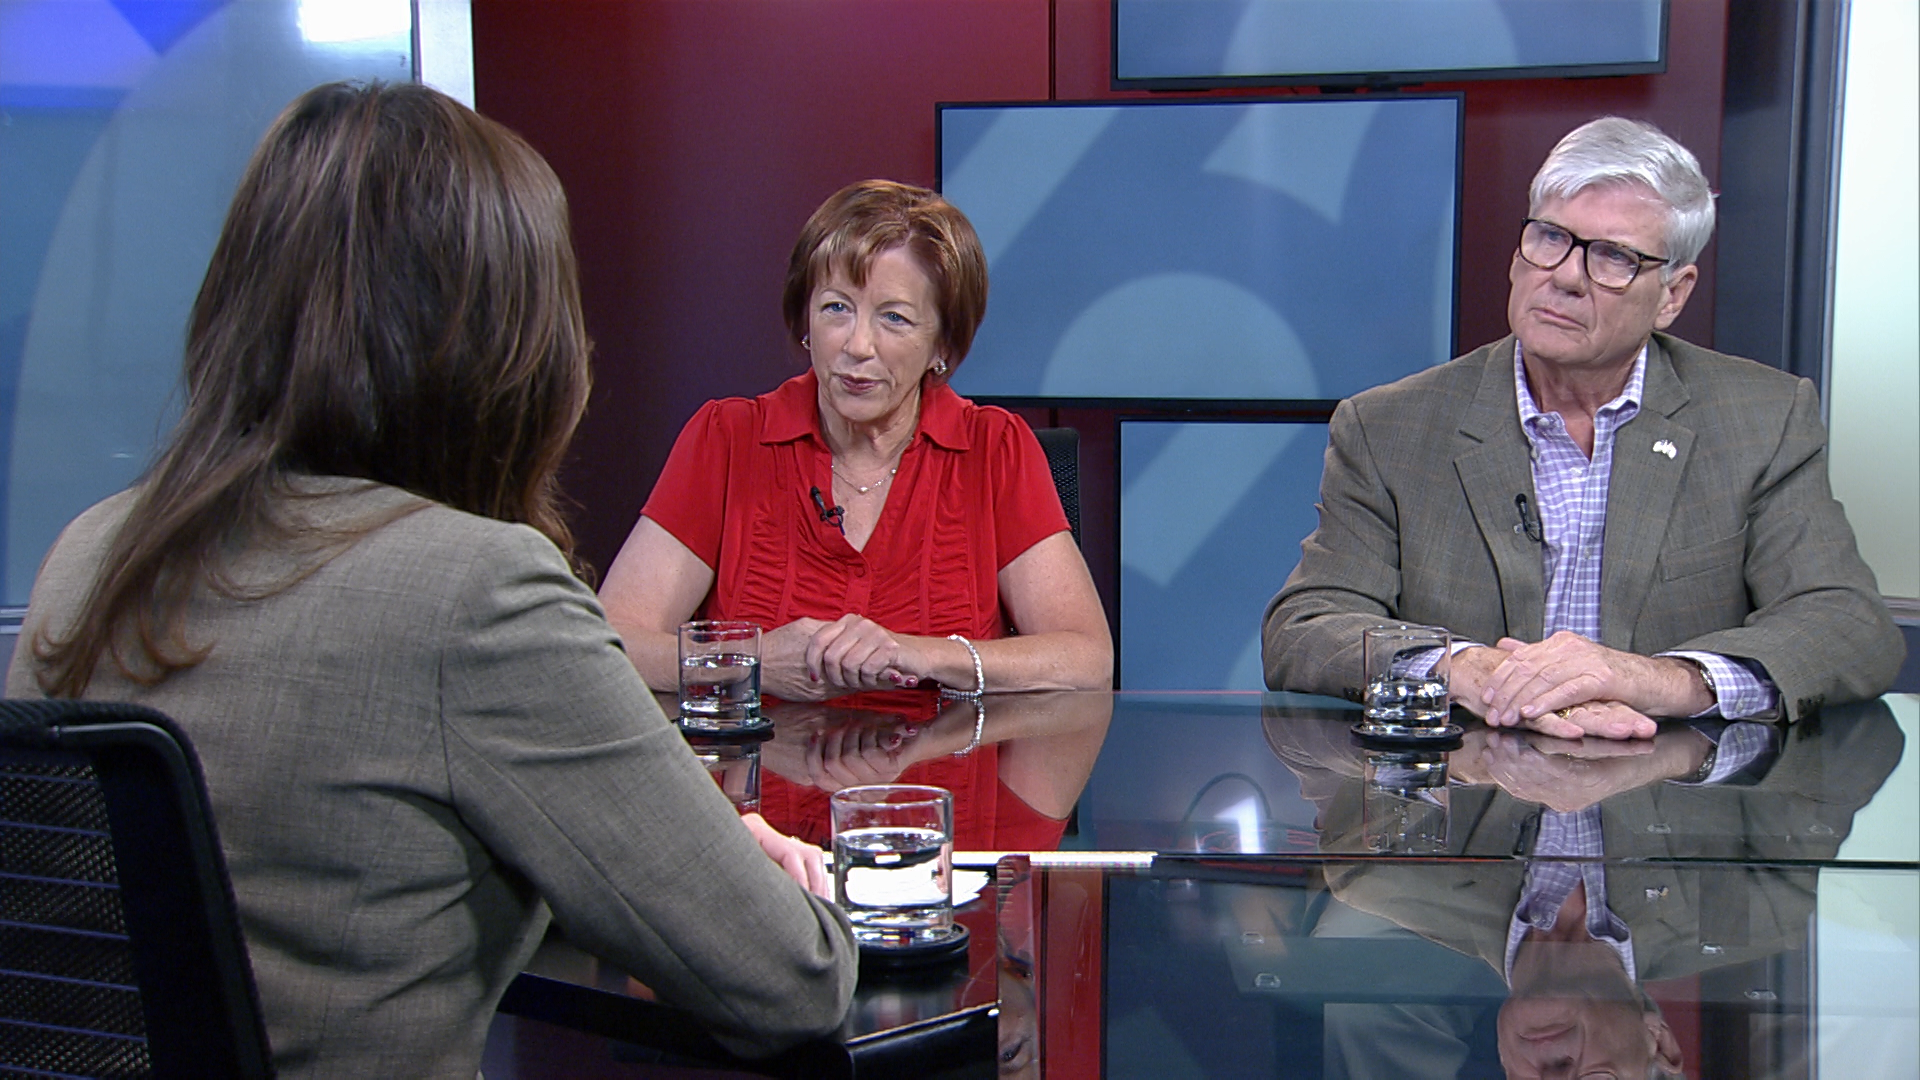 Jo Holt (left) and David Eppihimer (right) in the Arizona 360 studio. Respectively, Holt and Eppihimer lead the Democratic and Republican parties in Pima County.